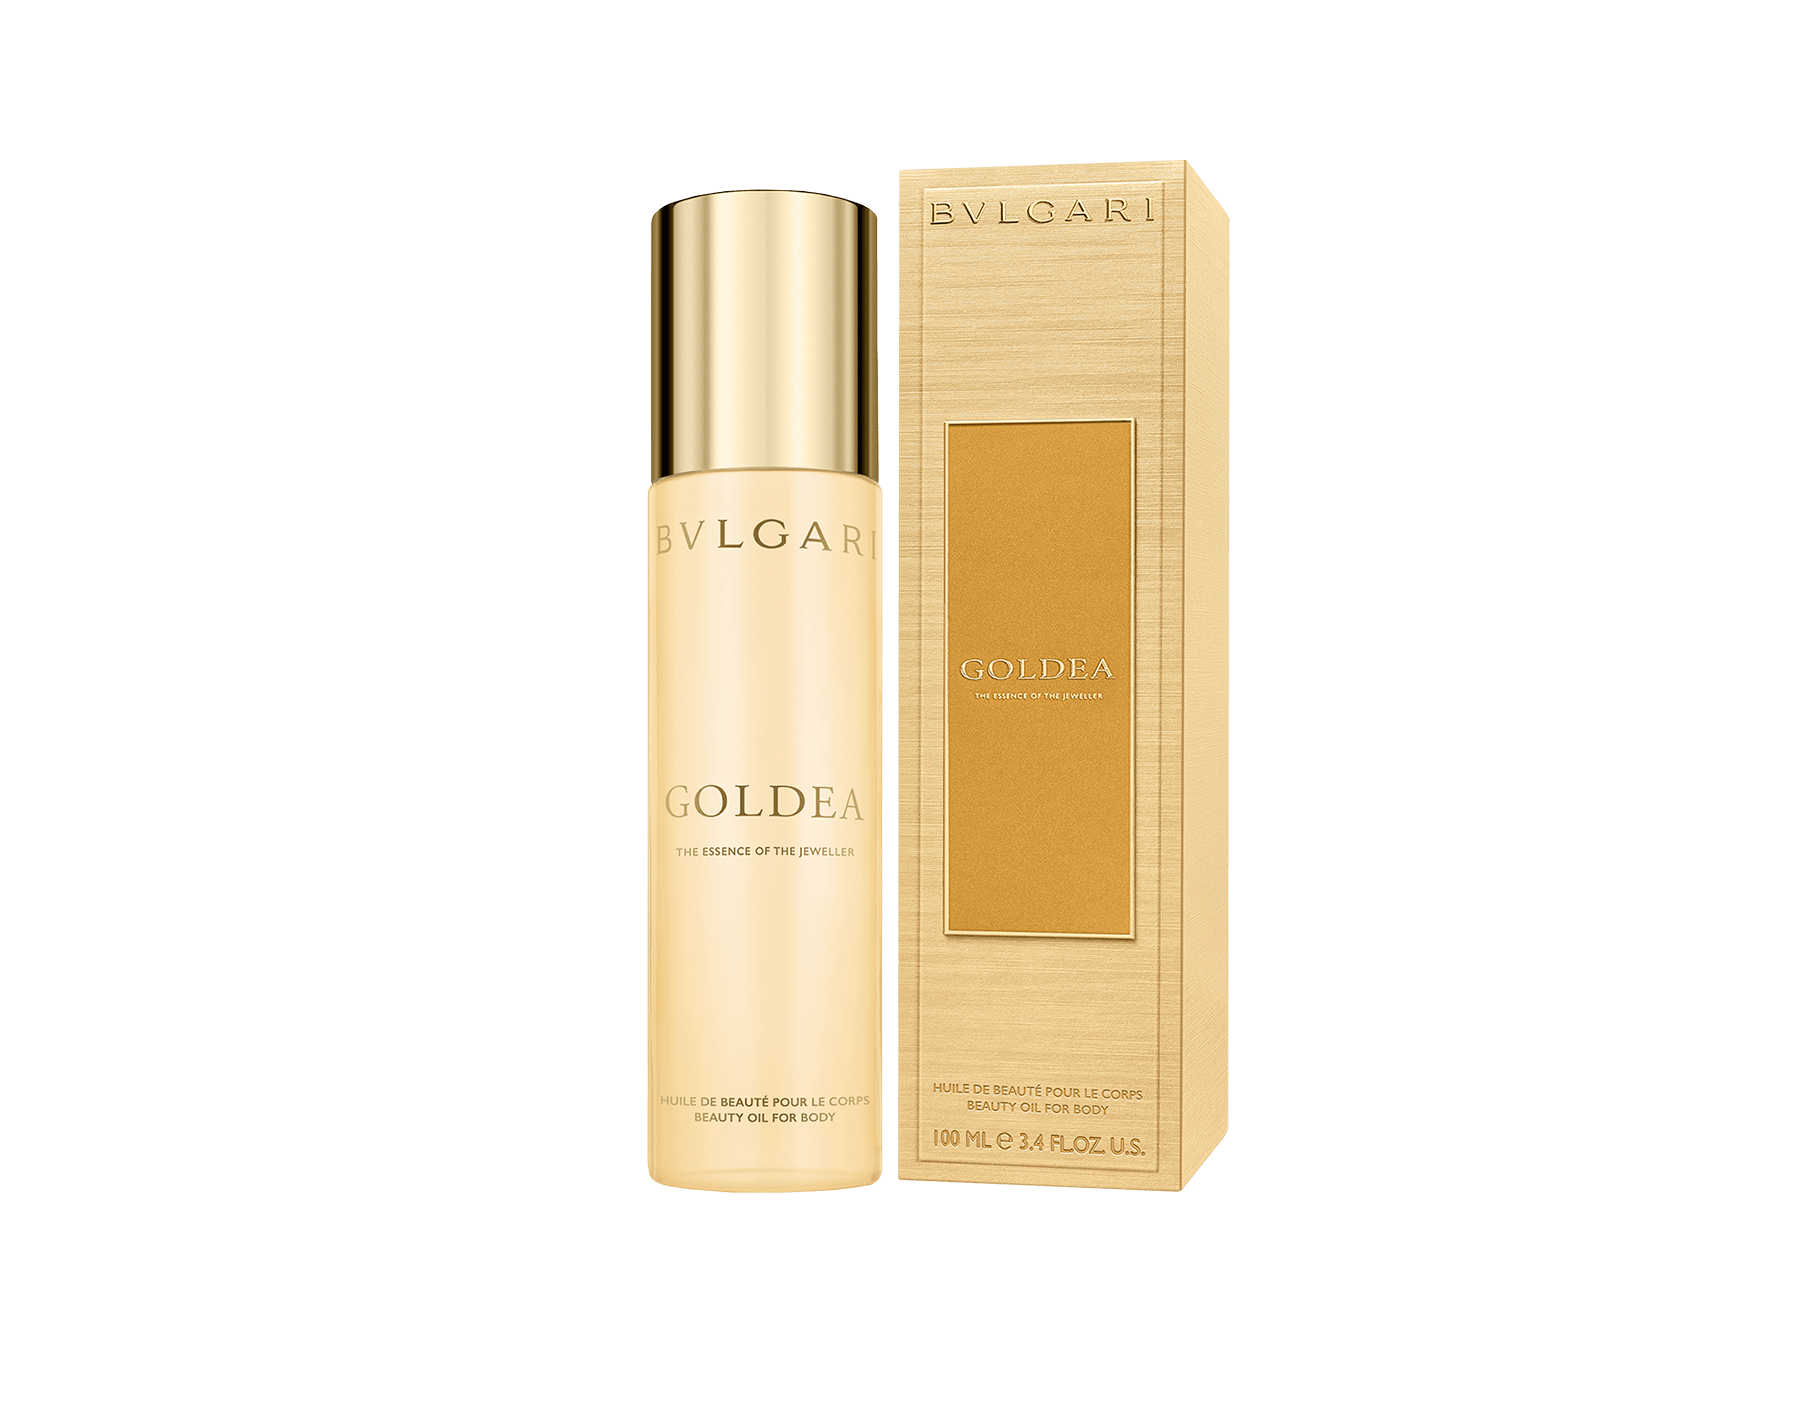 Infinitely sensual and refined, this dry body oil preciously scented with Goldea notes beautifies the skin. Apply to the body with gentle massage to leave skin velvety smooth to the touch. Its luxurious texture penetrates quickly, leaving the skin with no oily sensation. 50525 image 2